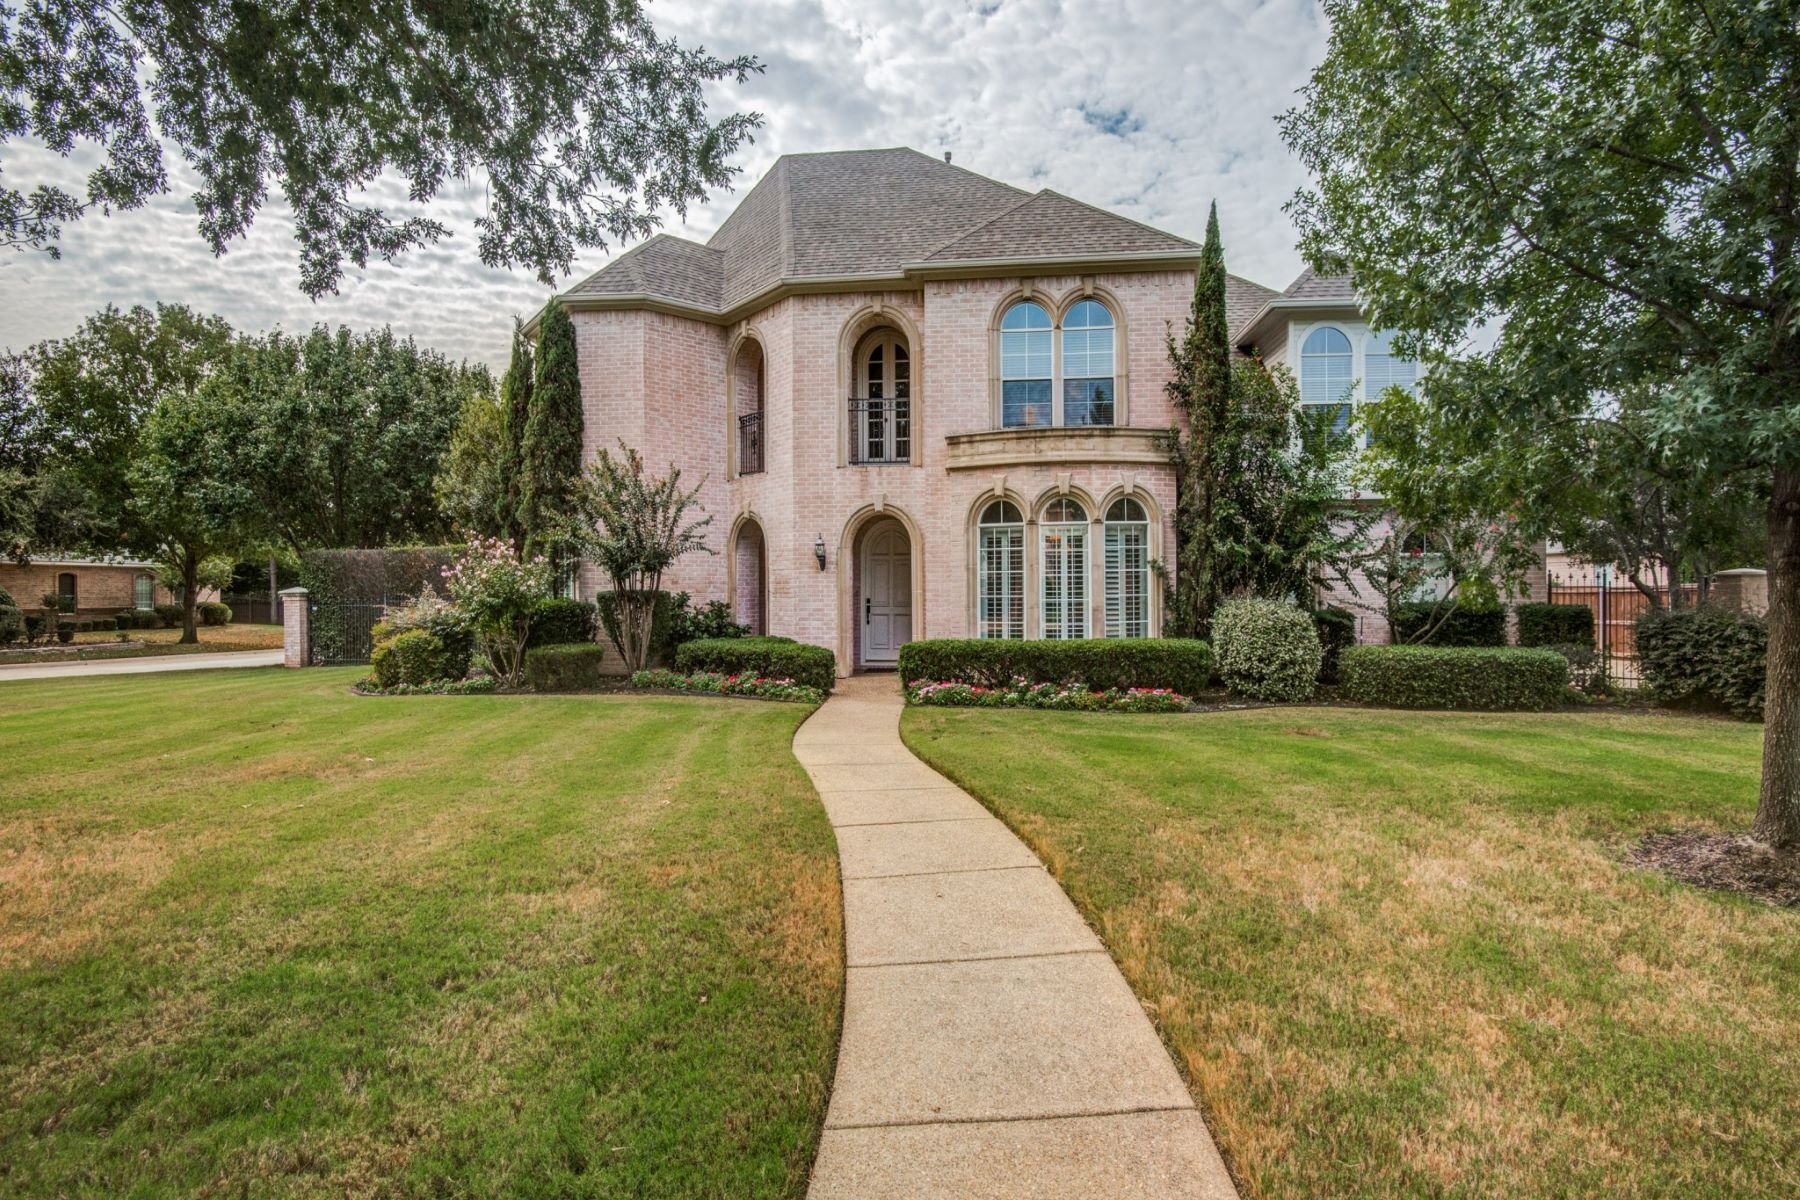 Single Family Homes for Sale at Southlake Luxury Home 109 Yale Drive Southlake, Texas 76092 United States